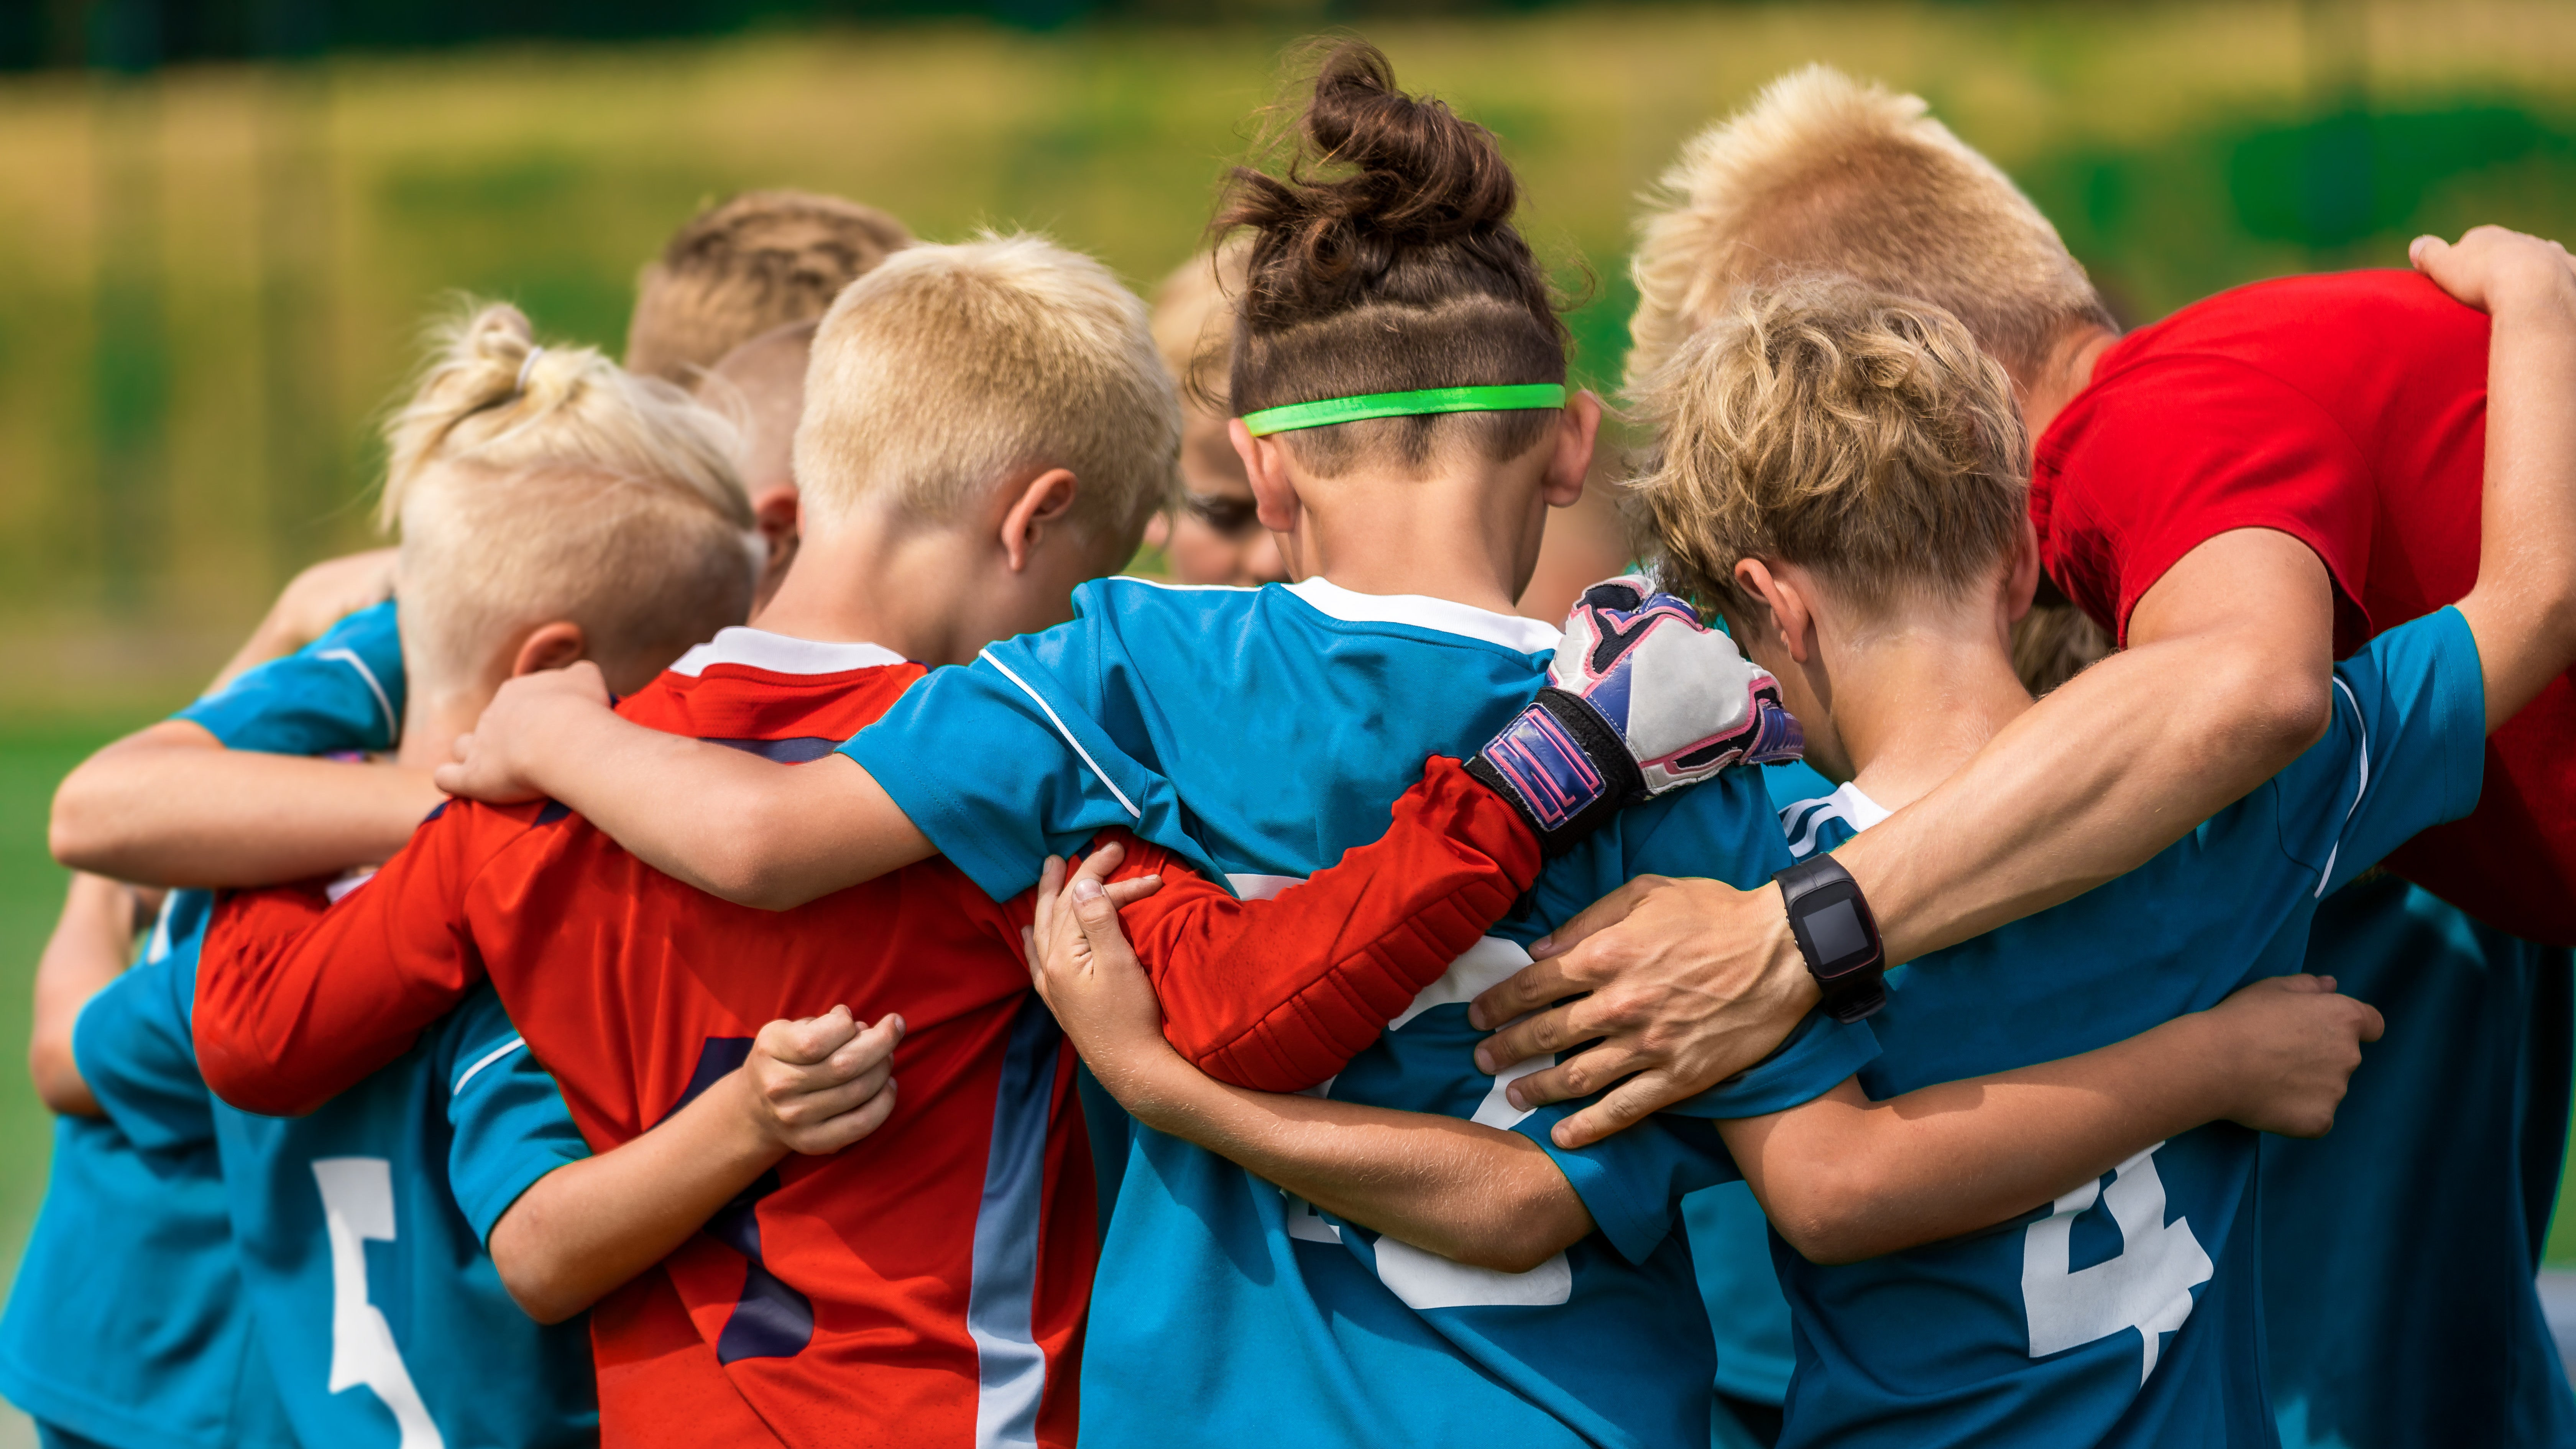 How To Keep Sports Fun For Kids